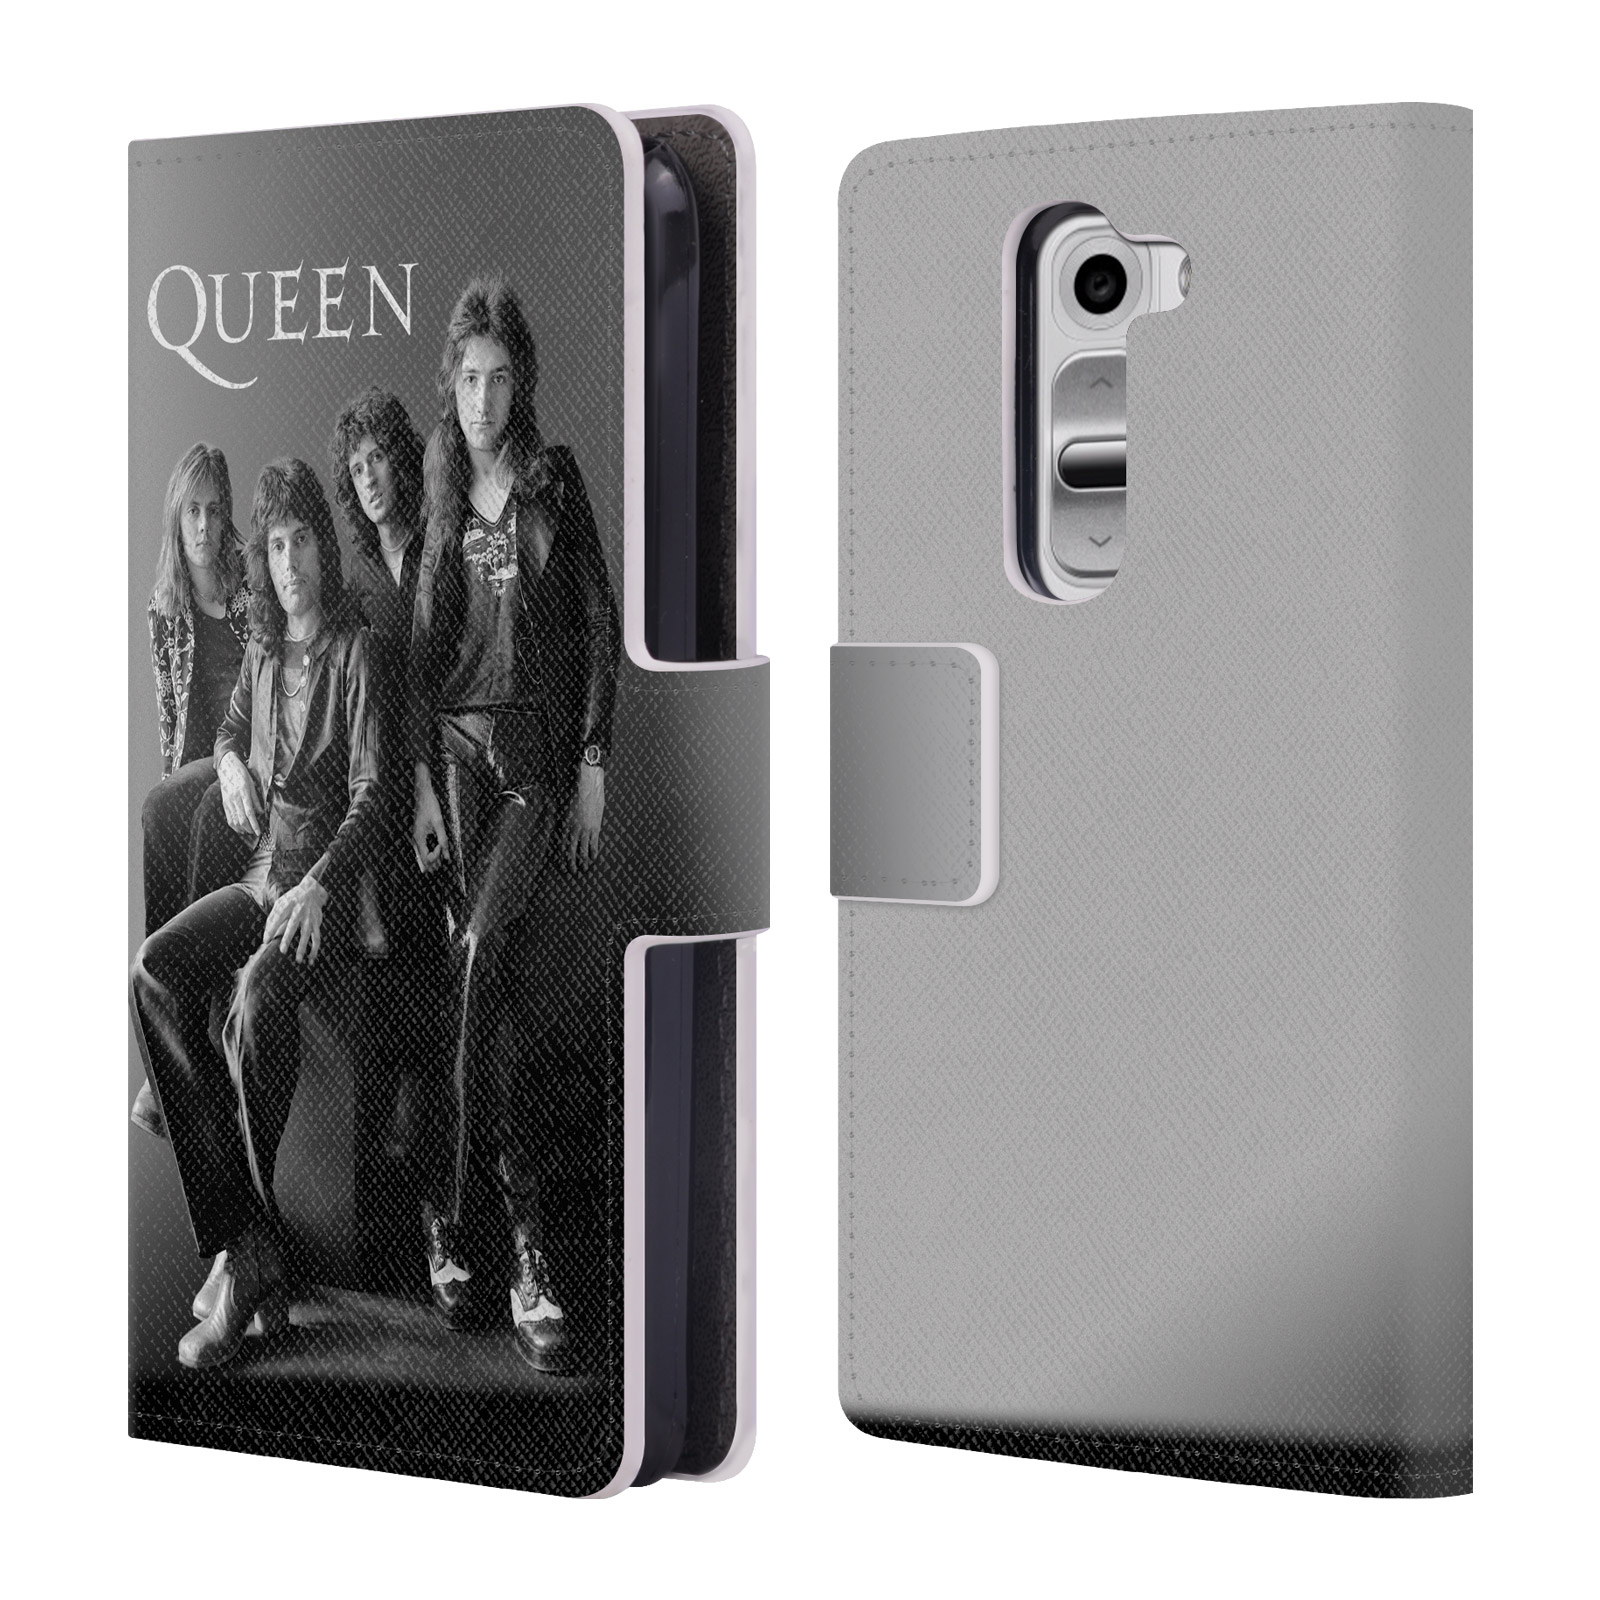 OFFICIAL QUEEN KEY ART LEATHER BOOK WALLET CASE COVER FOR LG PHONES 1